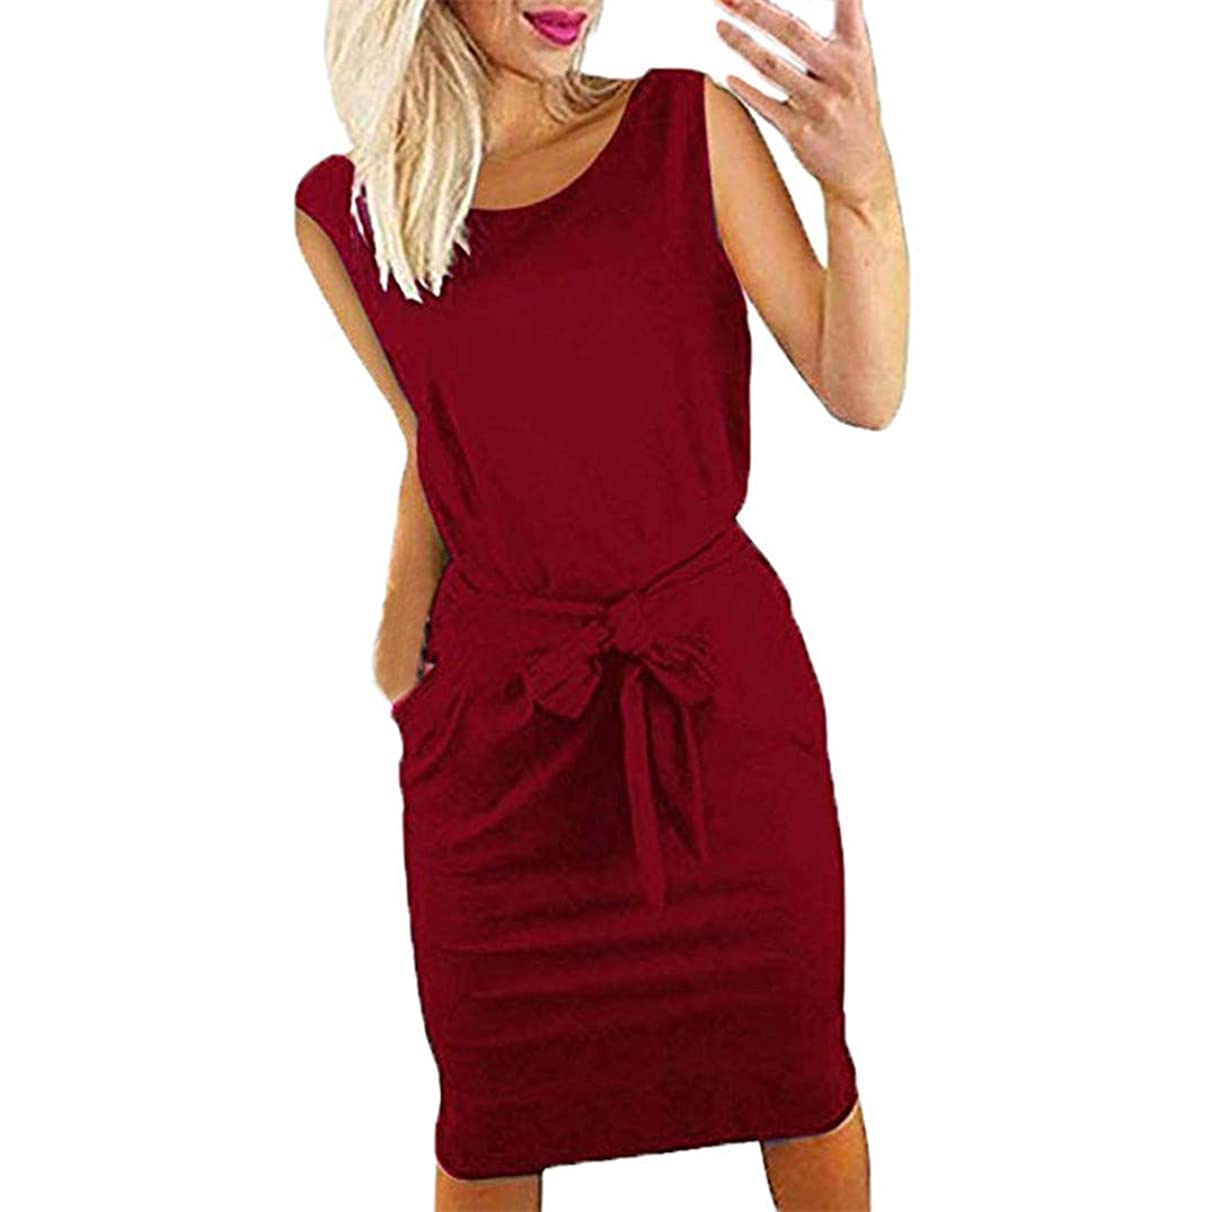 Dress for Women, Summer Sleeveless Casual Solid Bow Wear to Work Fit Office Midi Dresses with Pocket